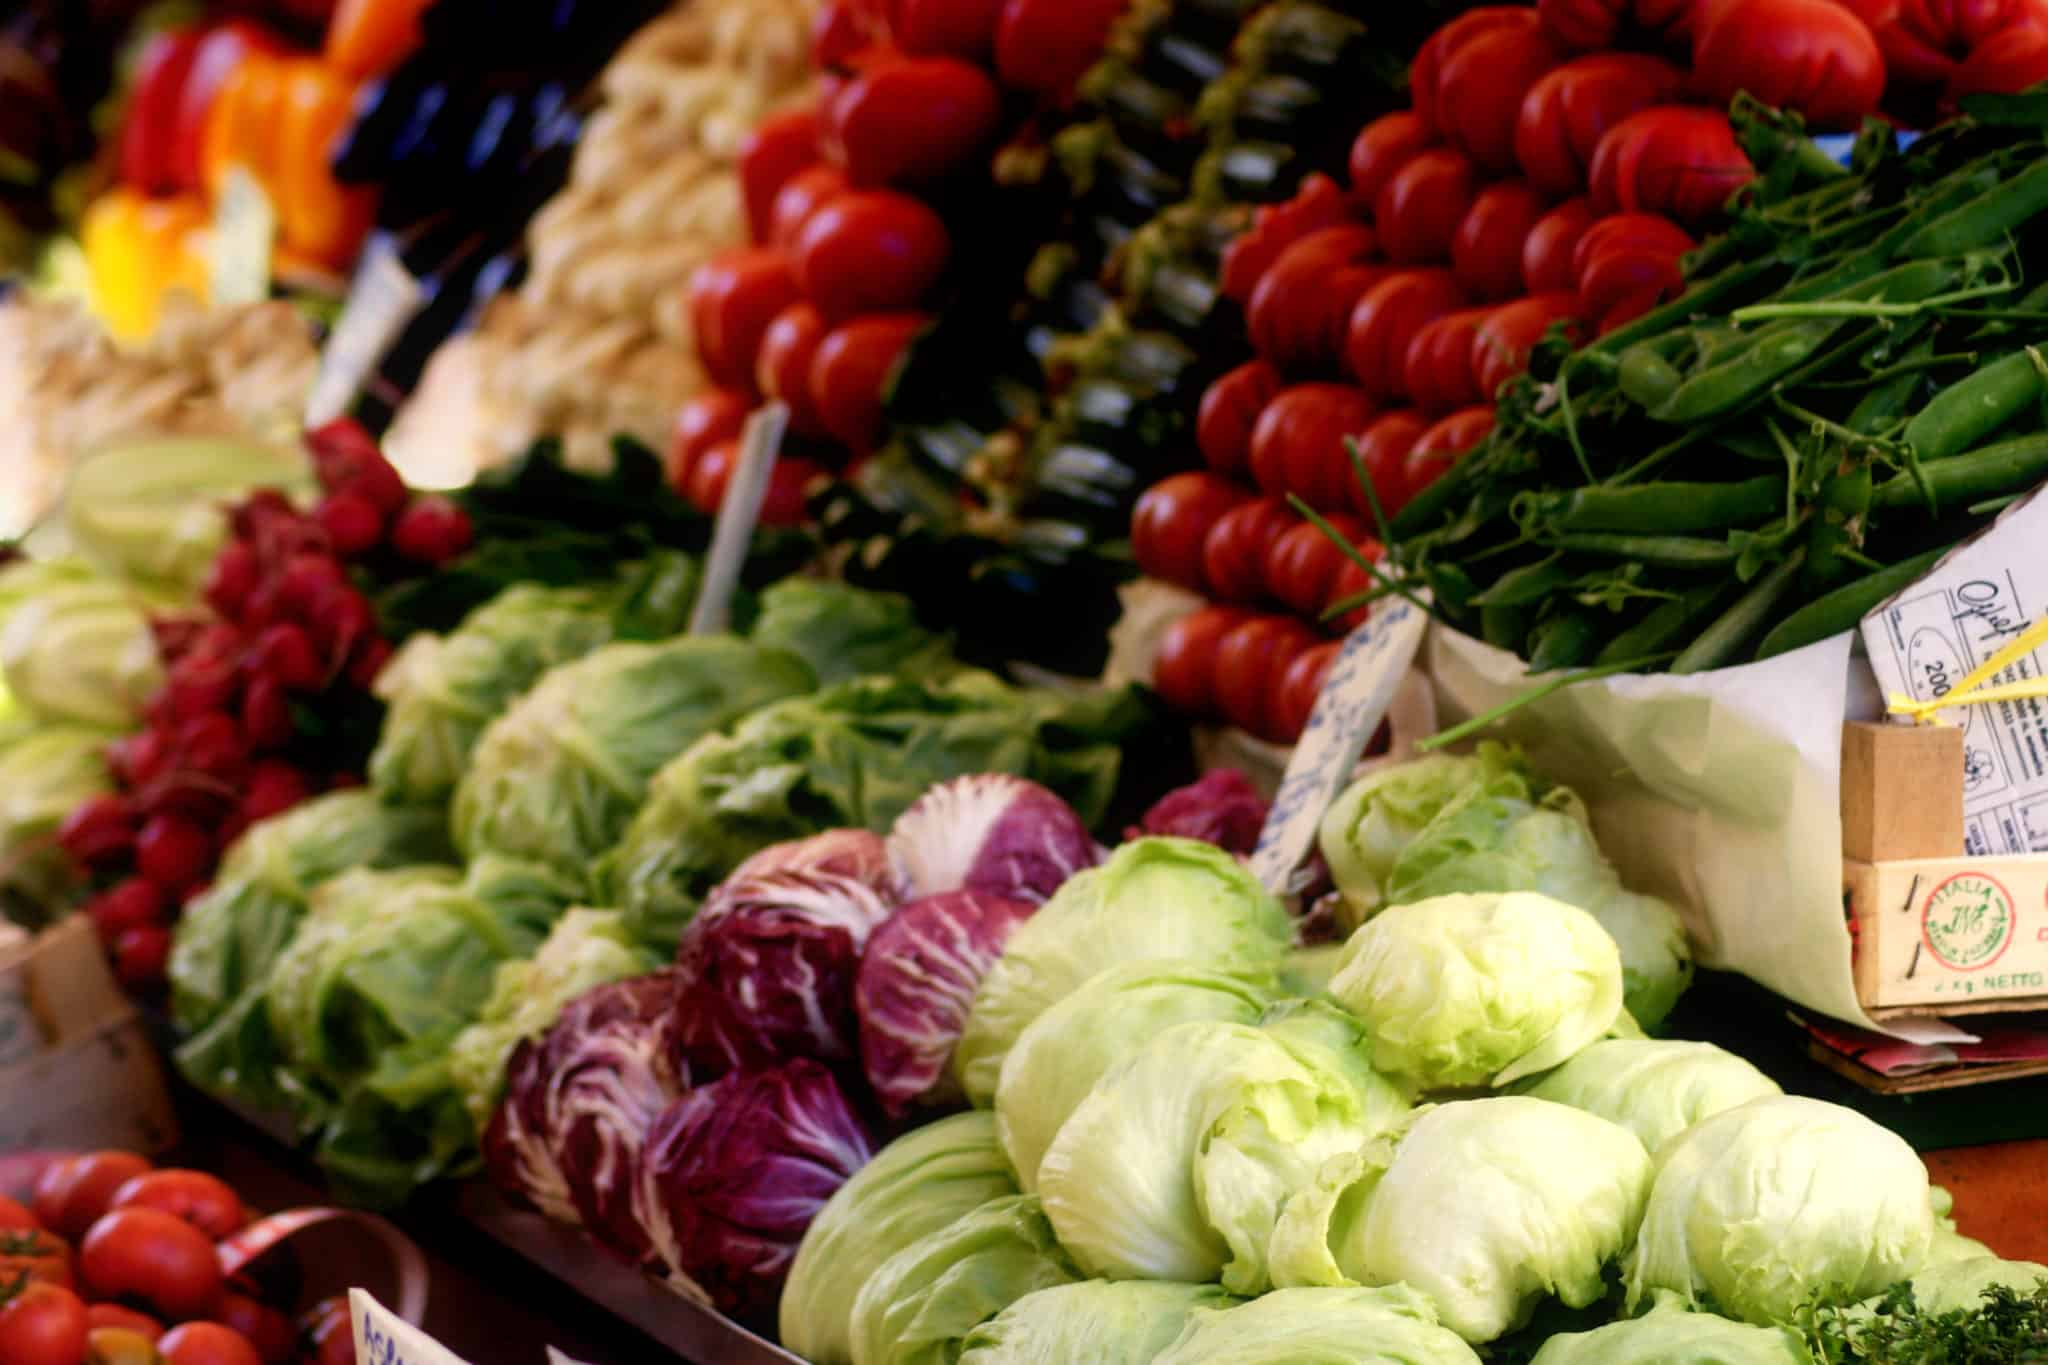 Rows of colorful produce